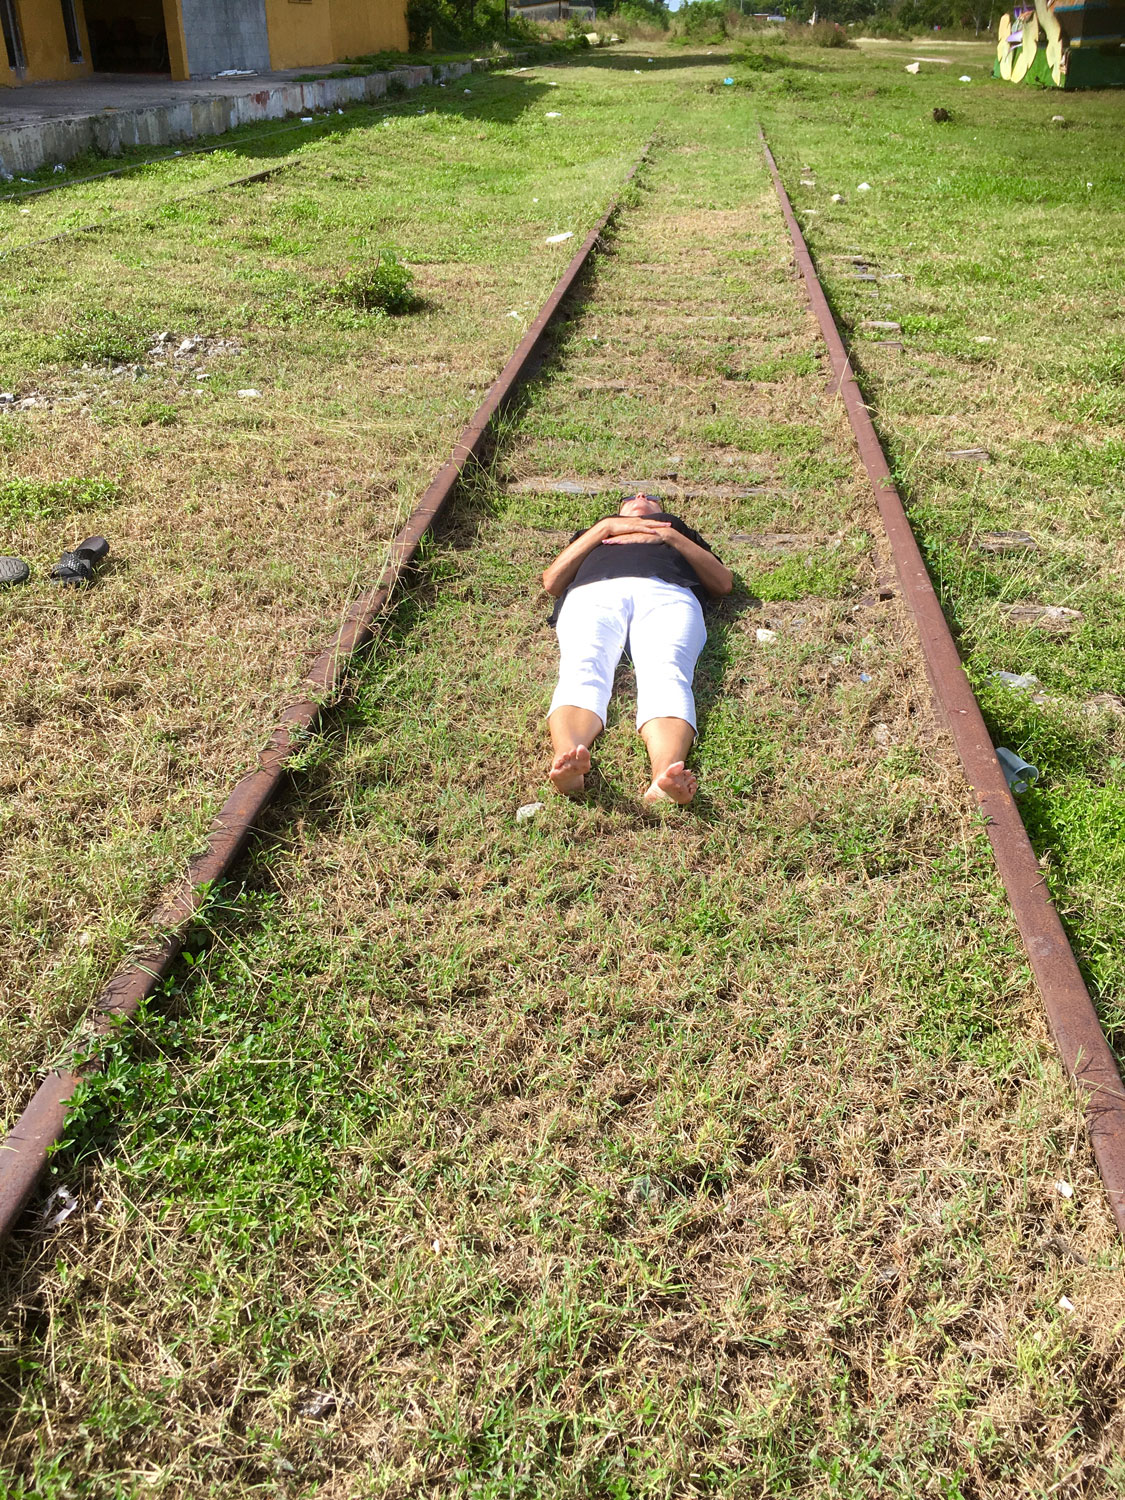 I am lying on the rail track just to prove it is out of use.